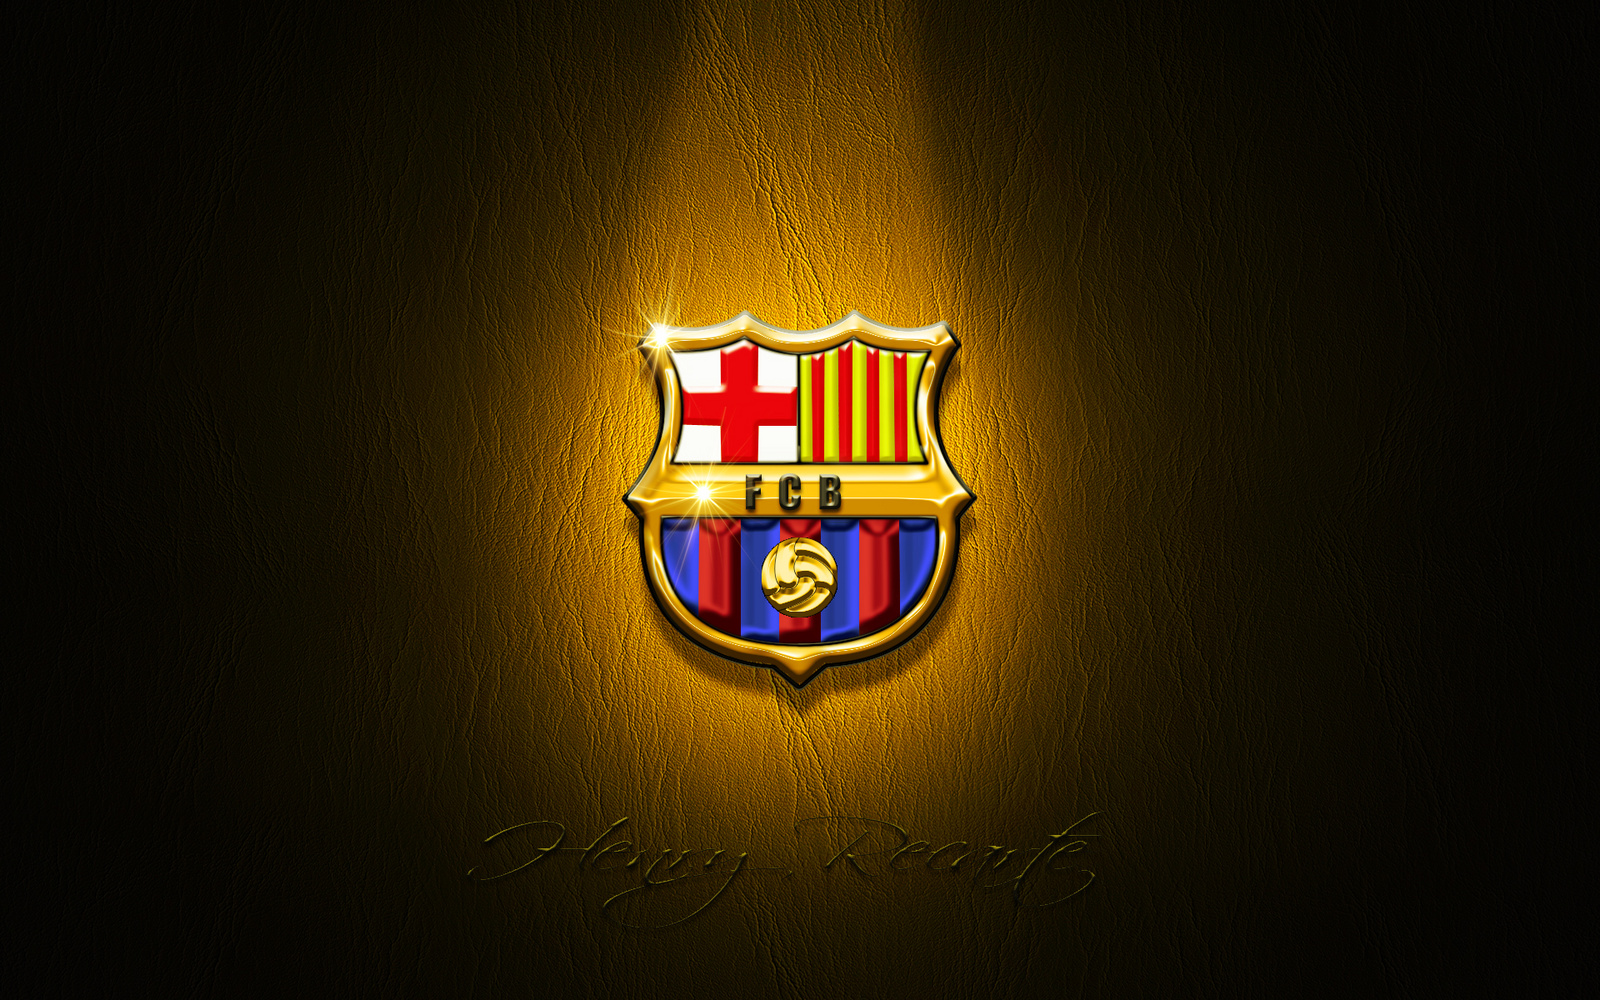 FC Barcelona New Wallpaper | It's All About Wallpapers